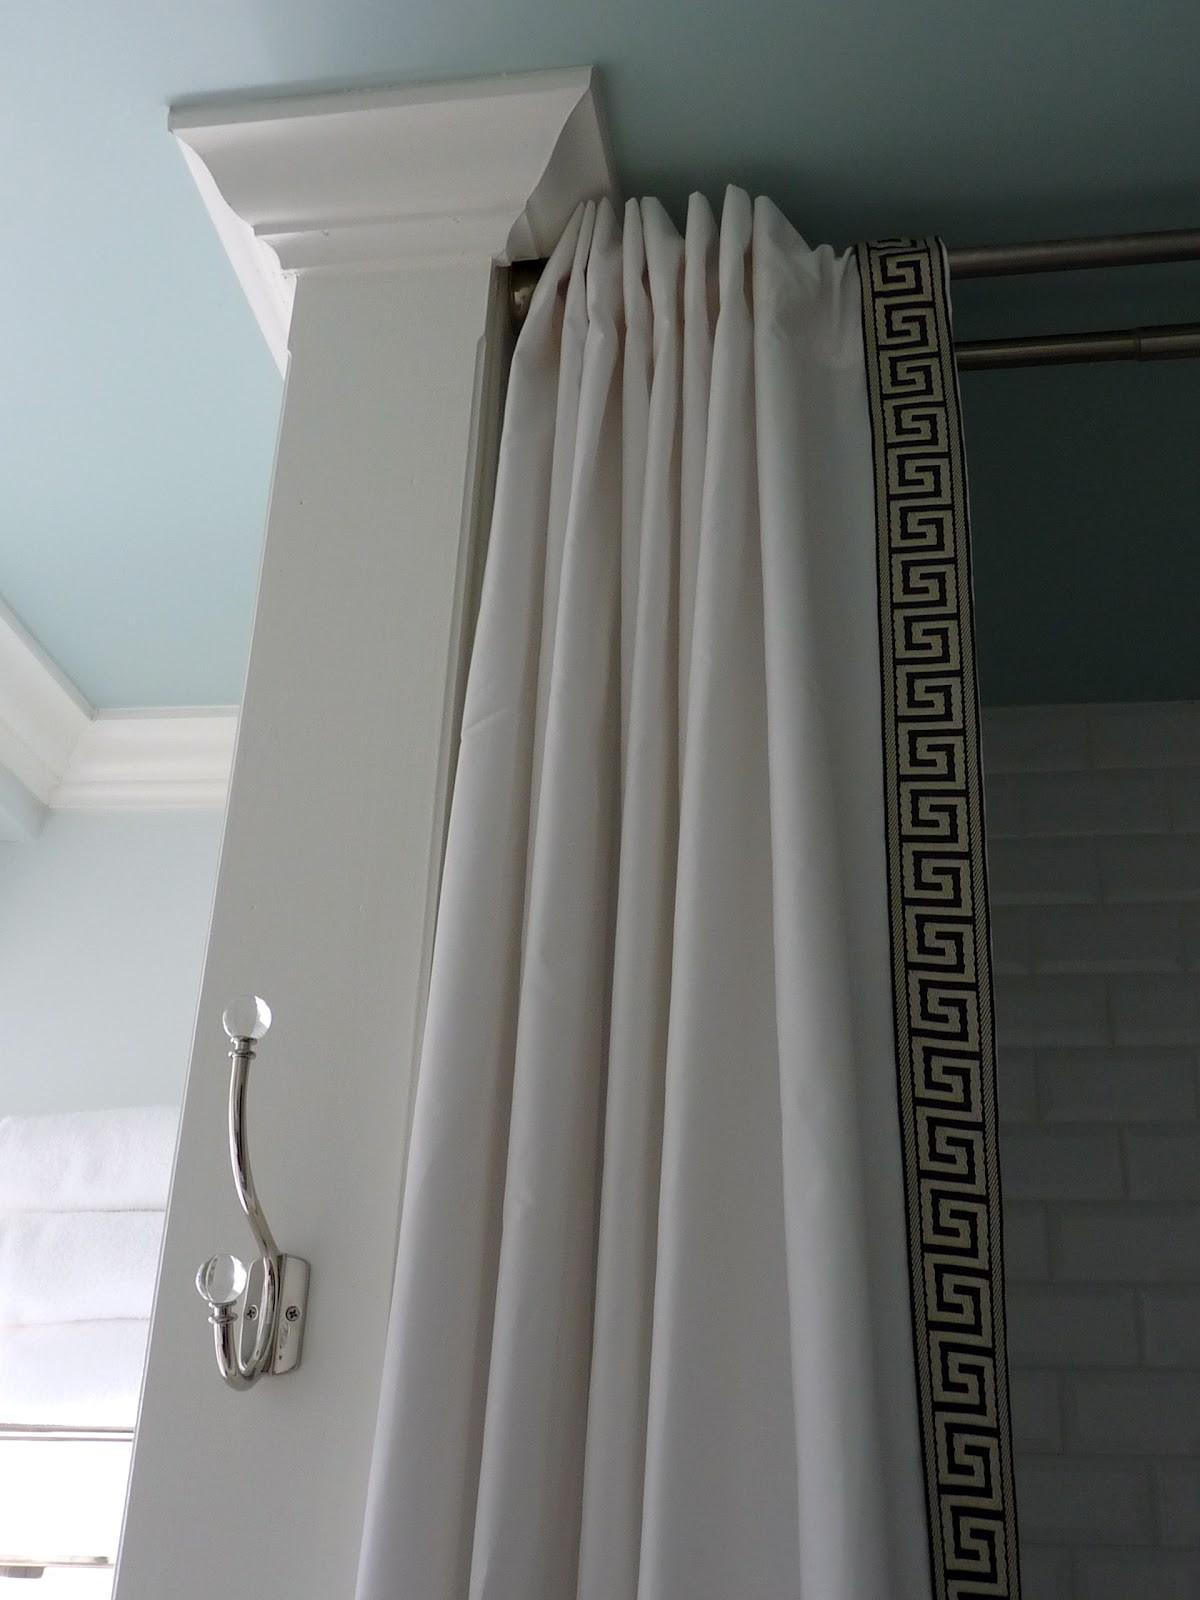 Hazardous Design Shower Curtain Diy Style